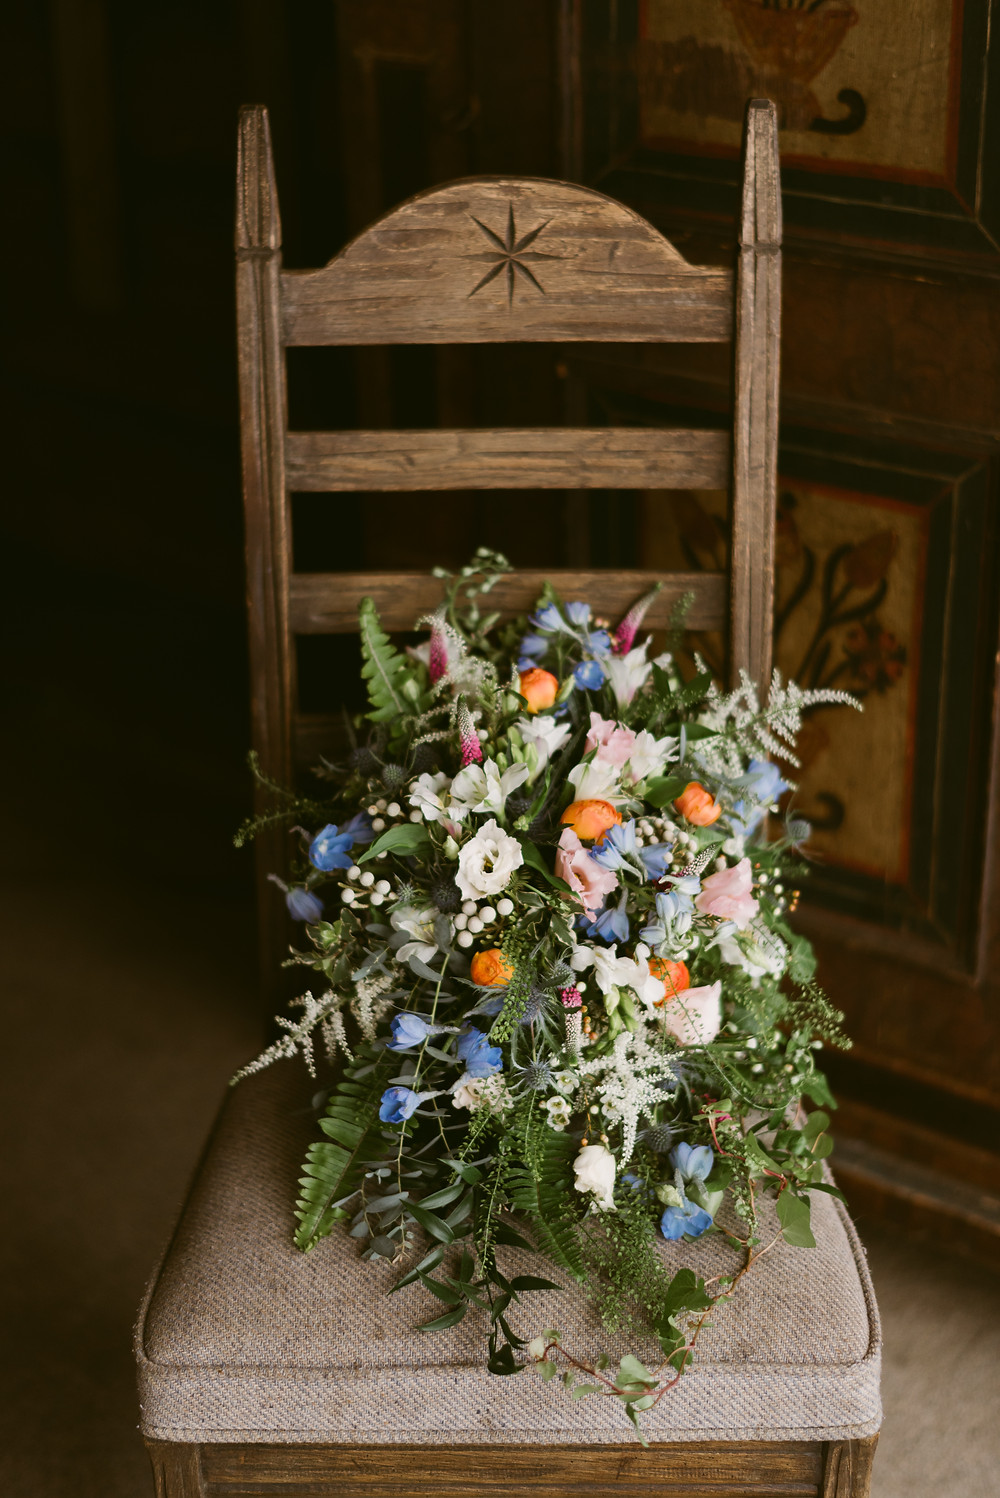 Beautiful bridal bouquet resting on antique wooden chair